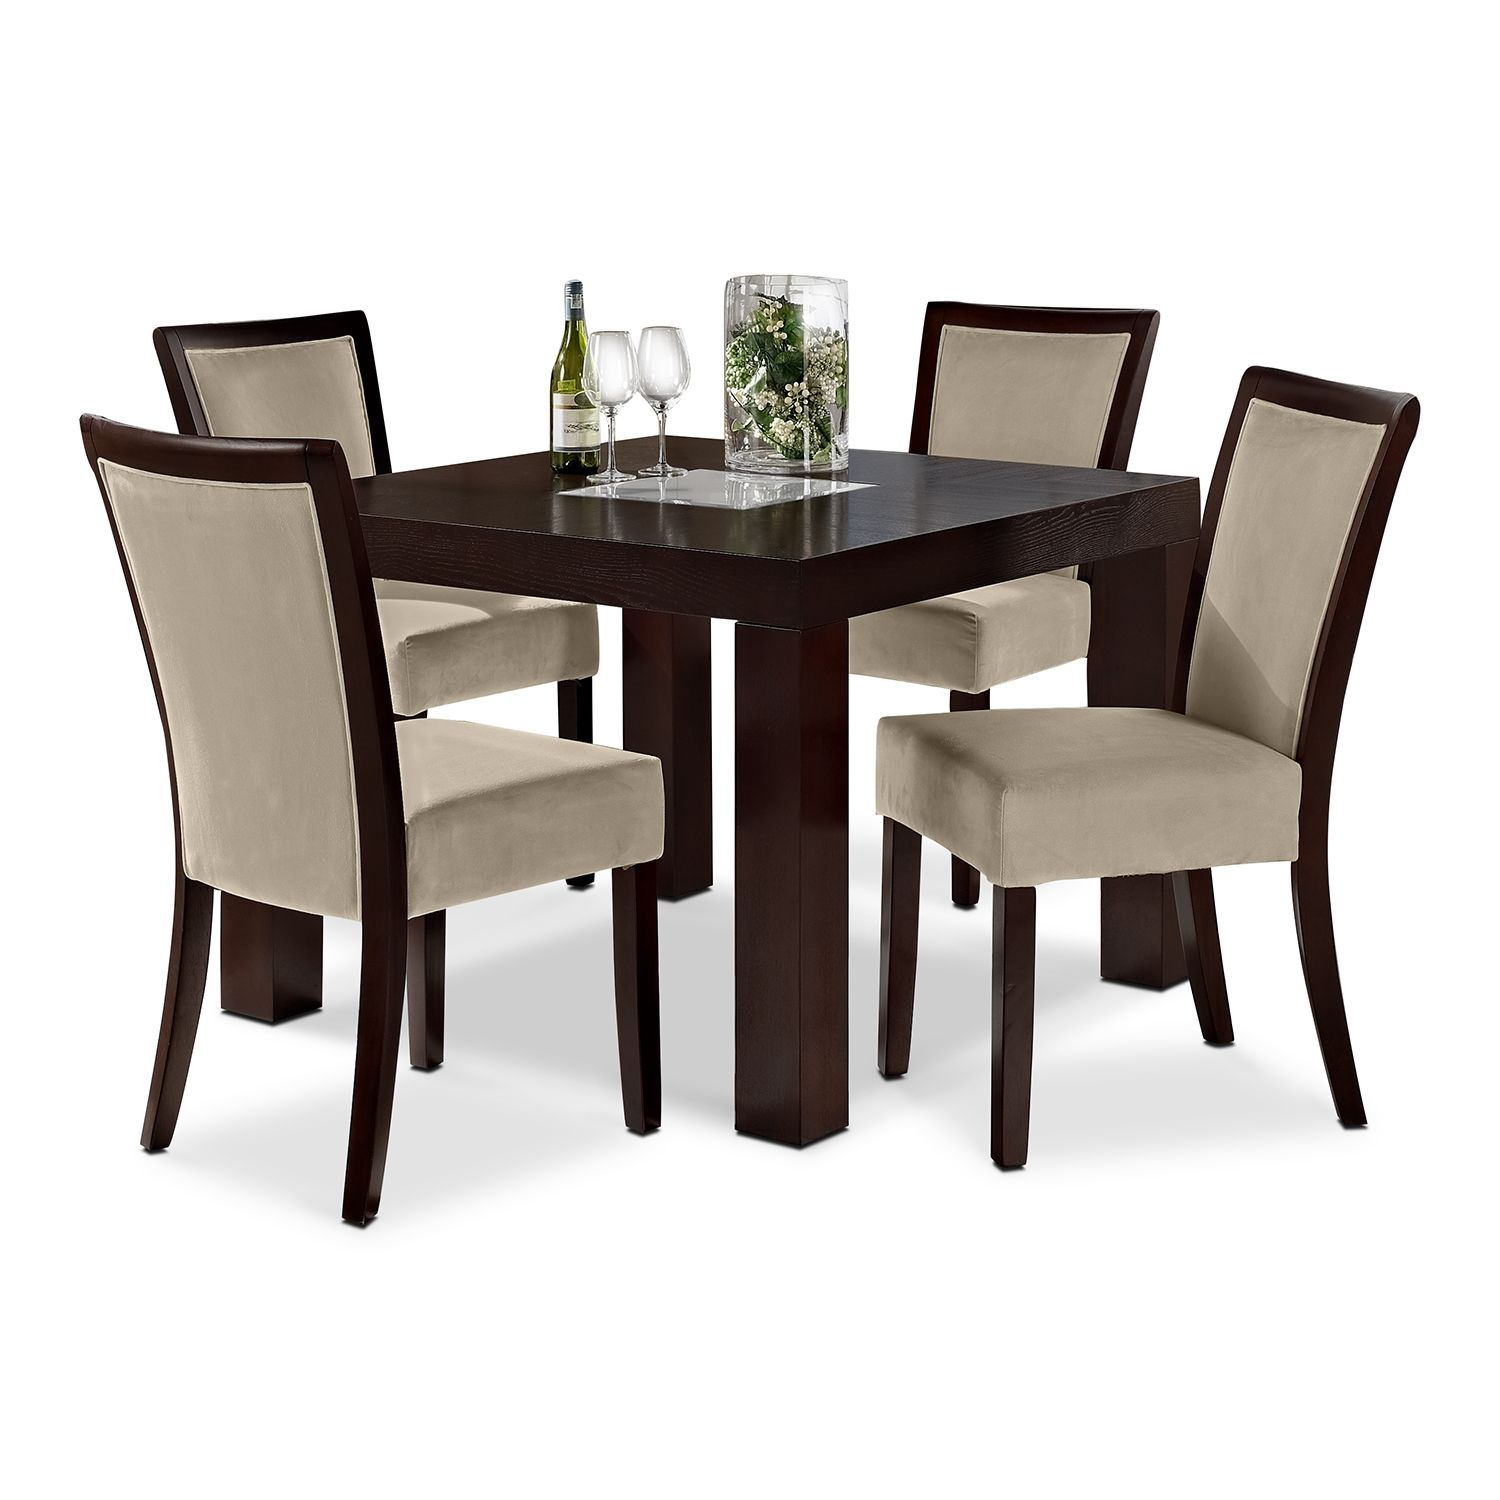 """Tango Stone 5 Pcdinette 42"""" Table  American Signature Classy American Signature Dining Room Sets Review"""